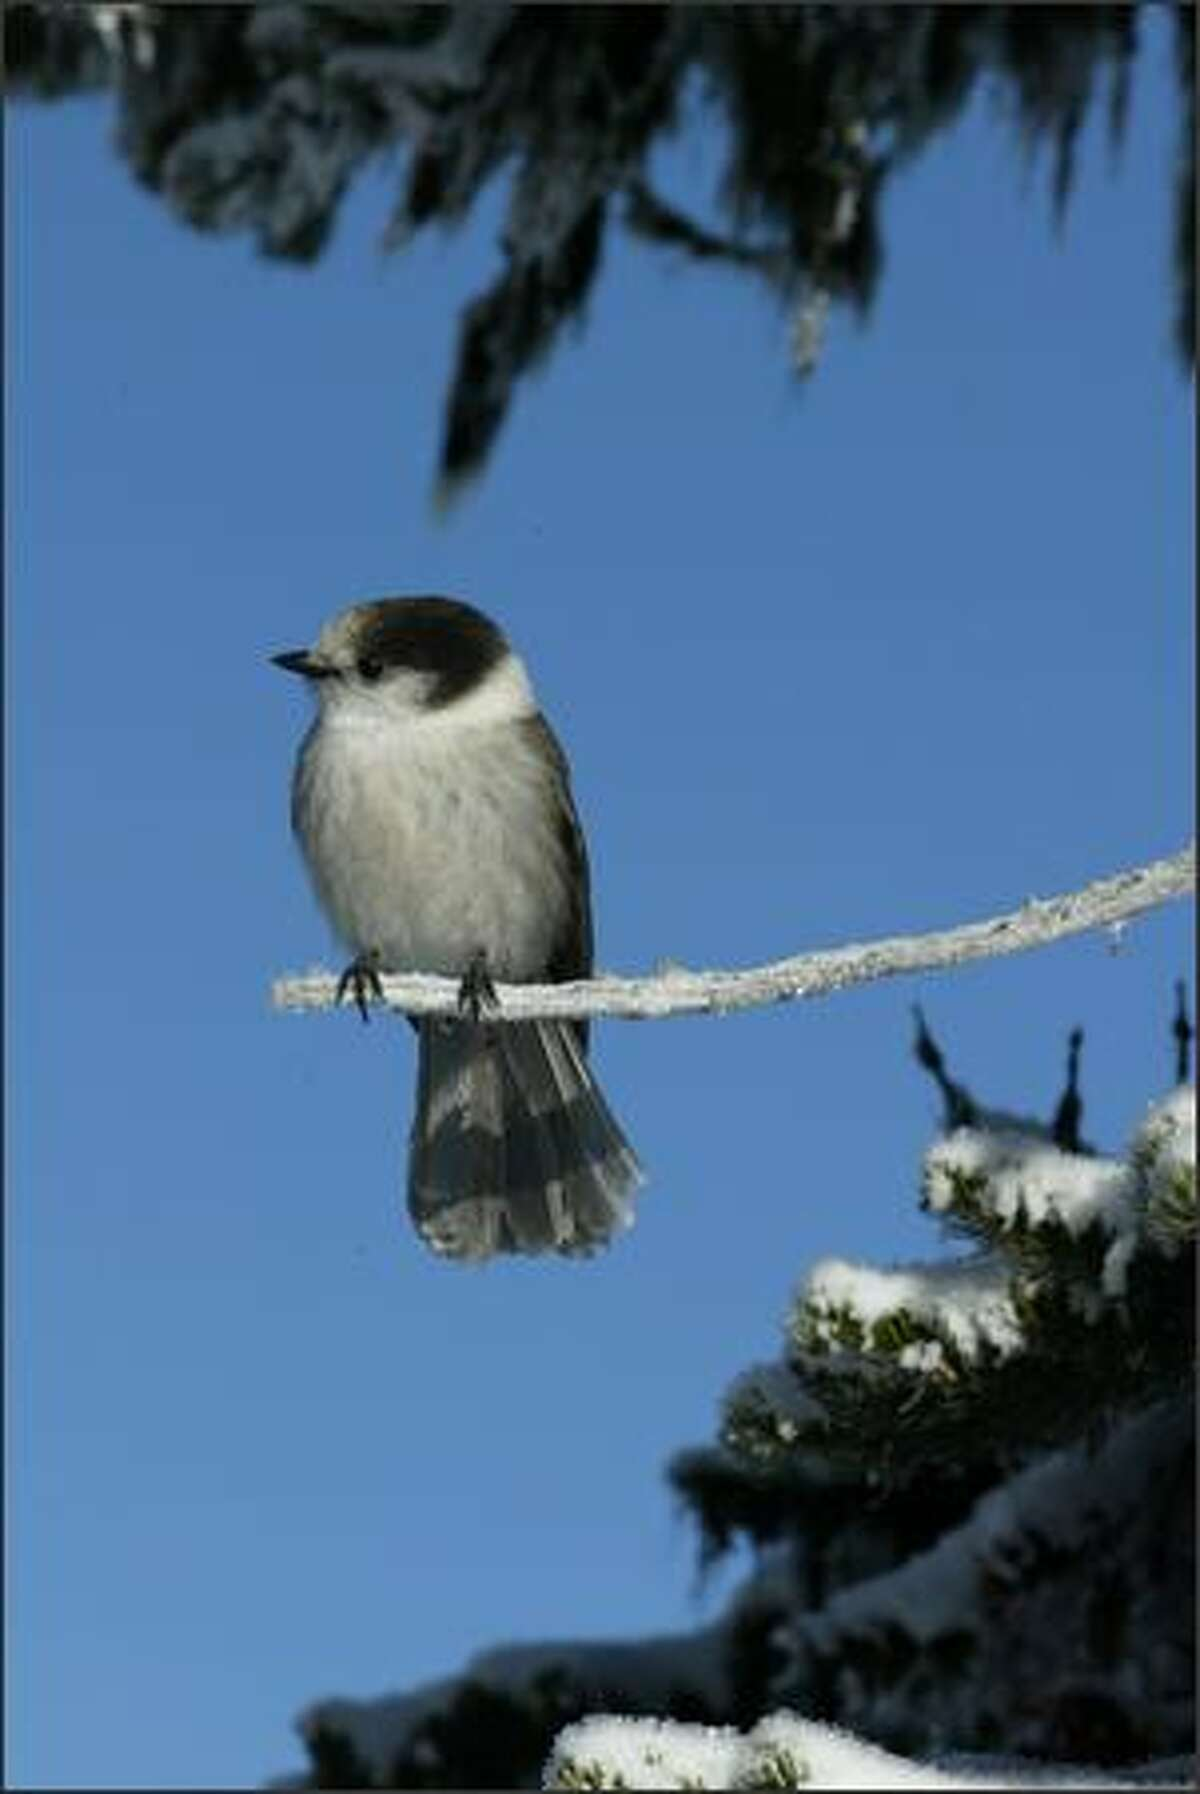 A watchful gray jay keeps his eyes peeled for any morsels dropped by snacking skiers.